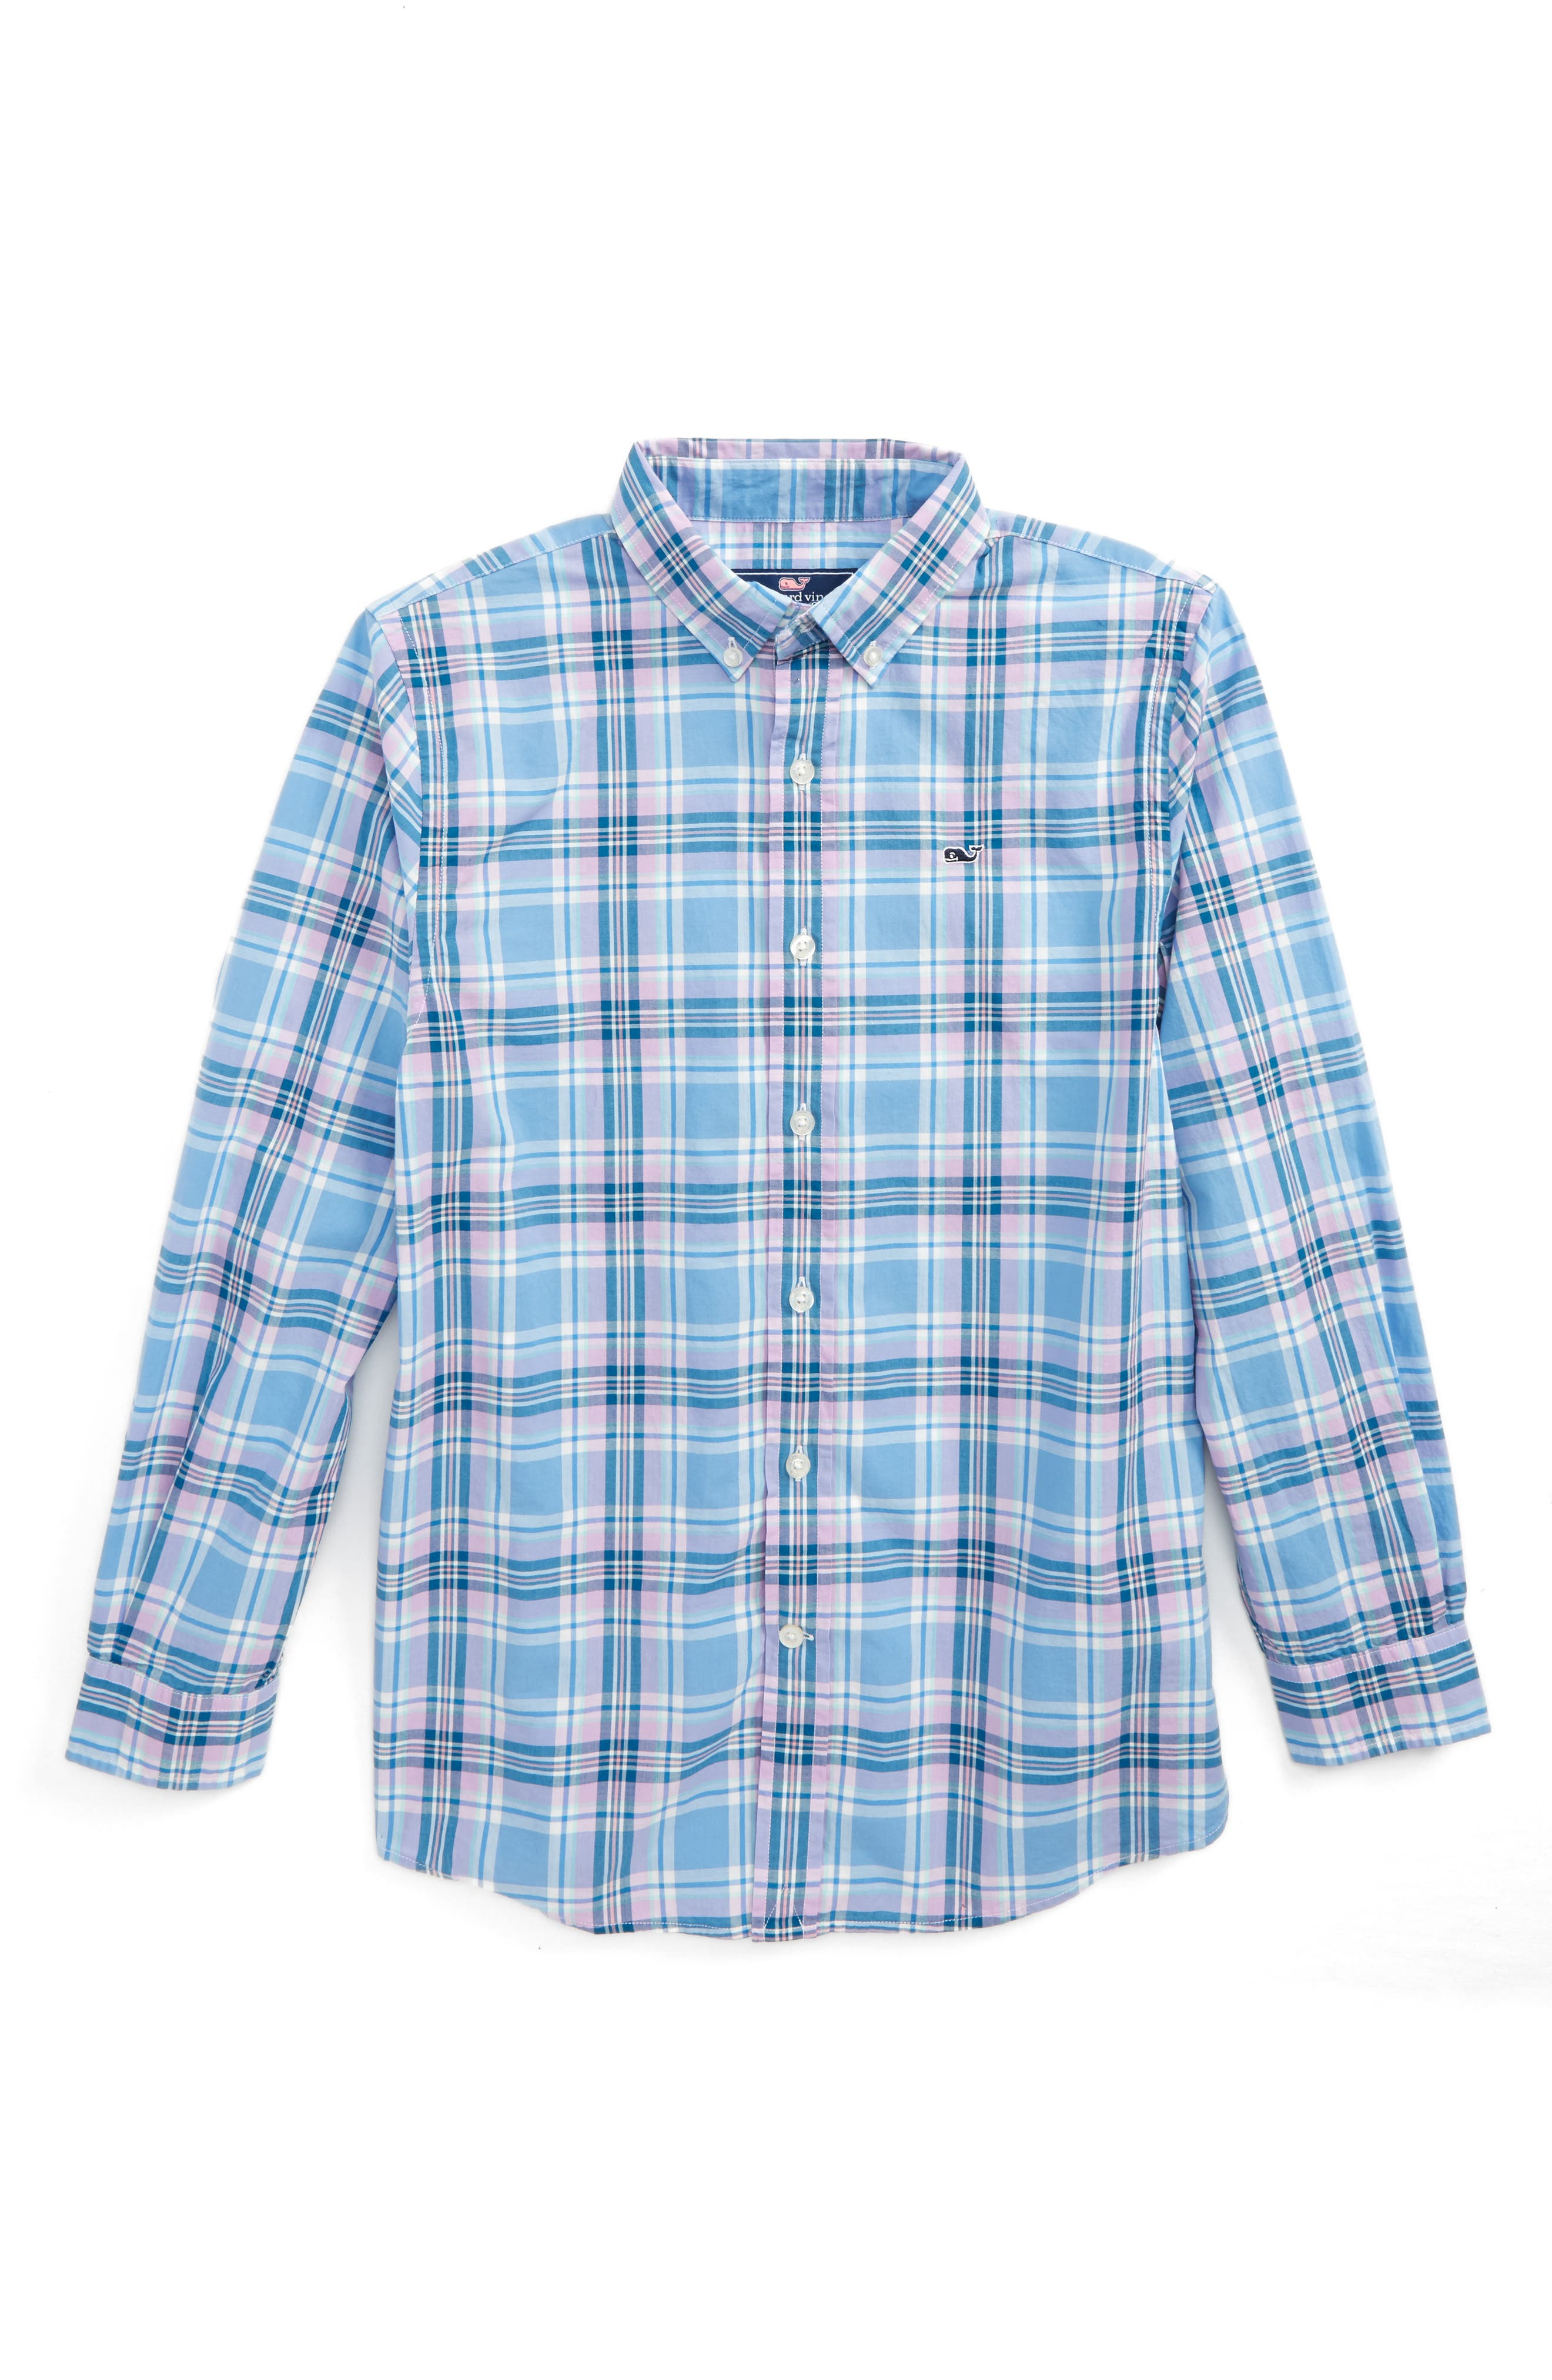 vineyard vines Ocean Walk Plaid Shirt (Big Boys)